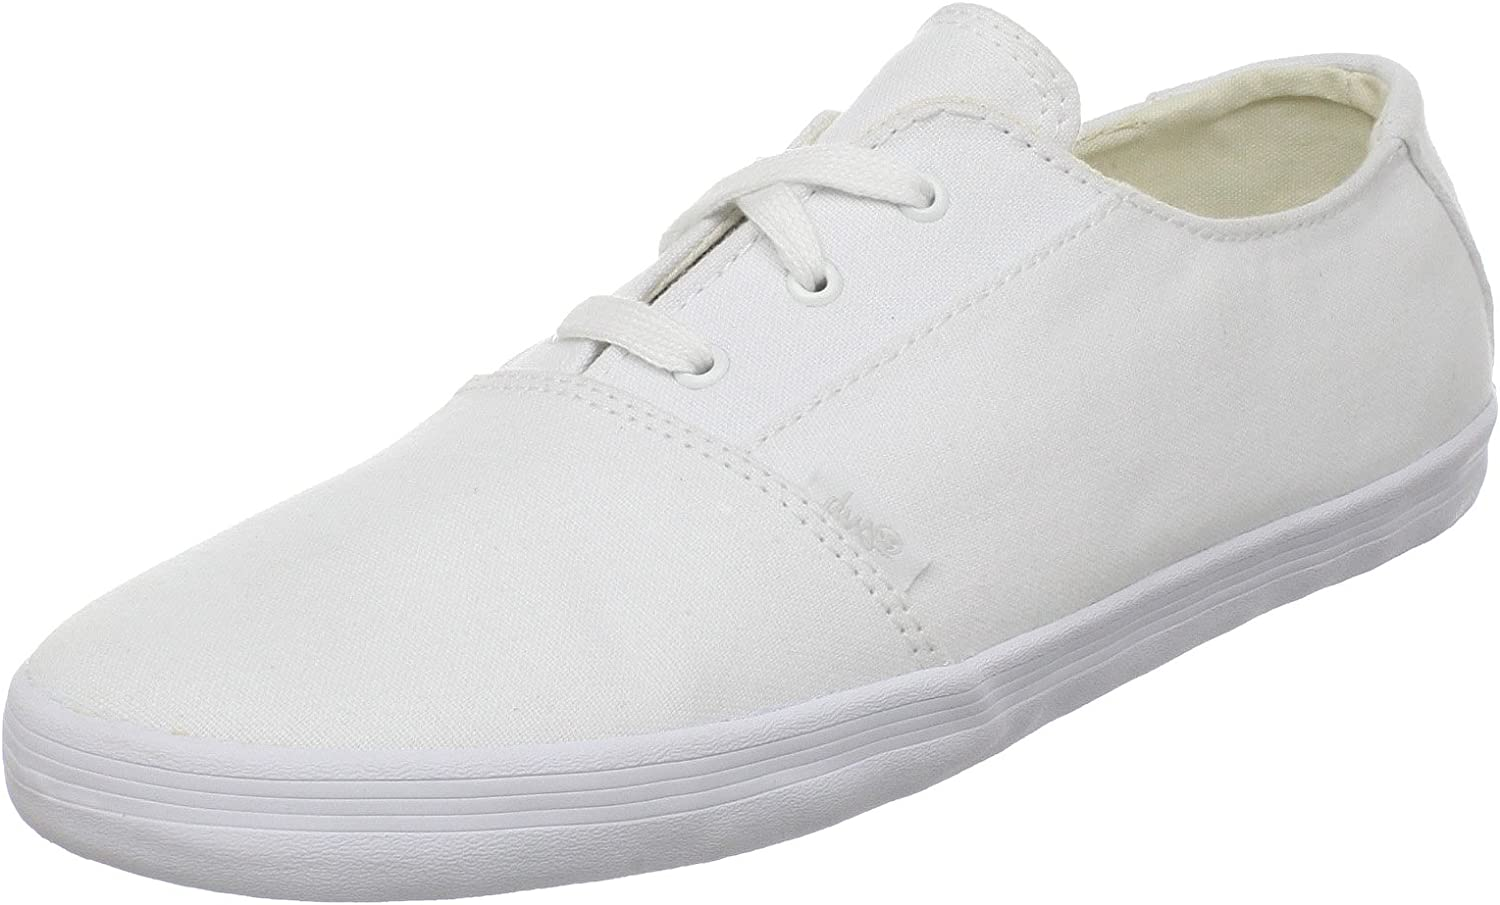 DVS Women's Benny Casual shoes